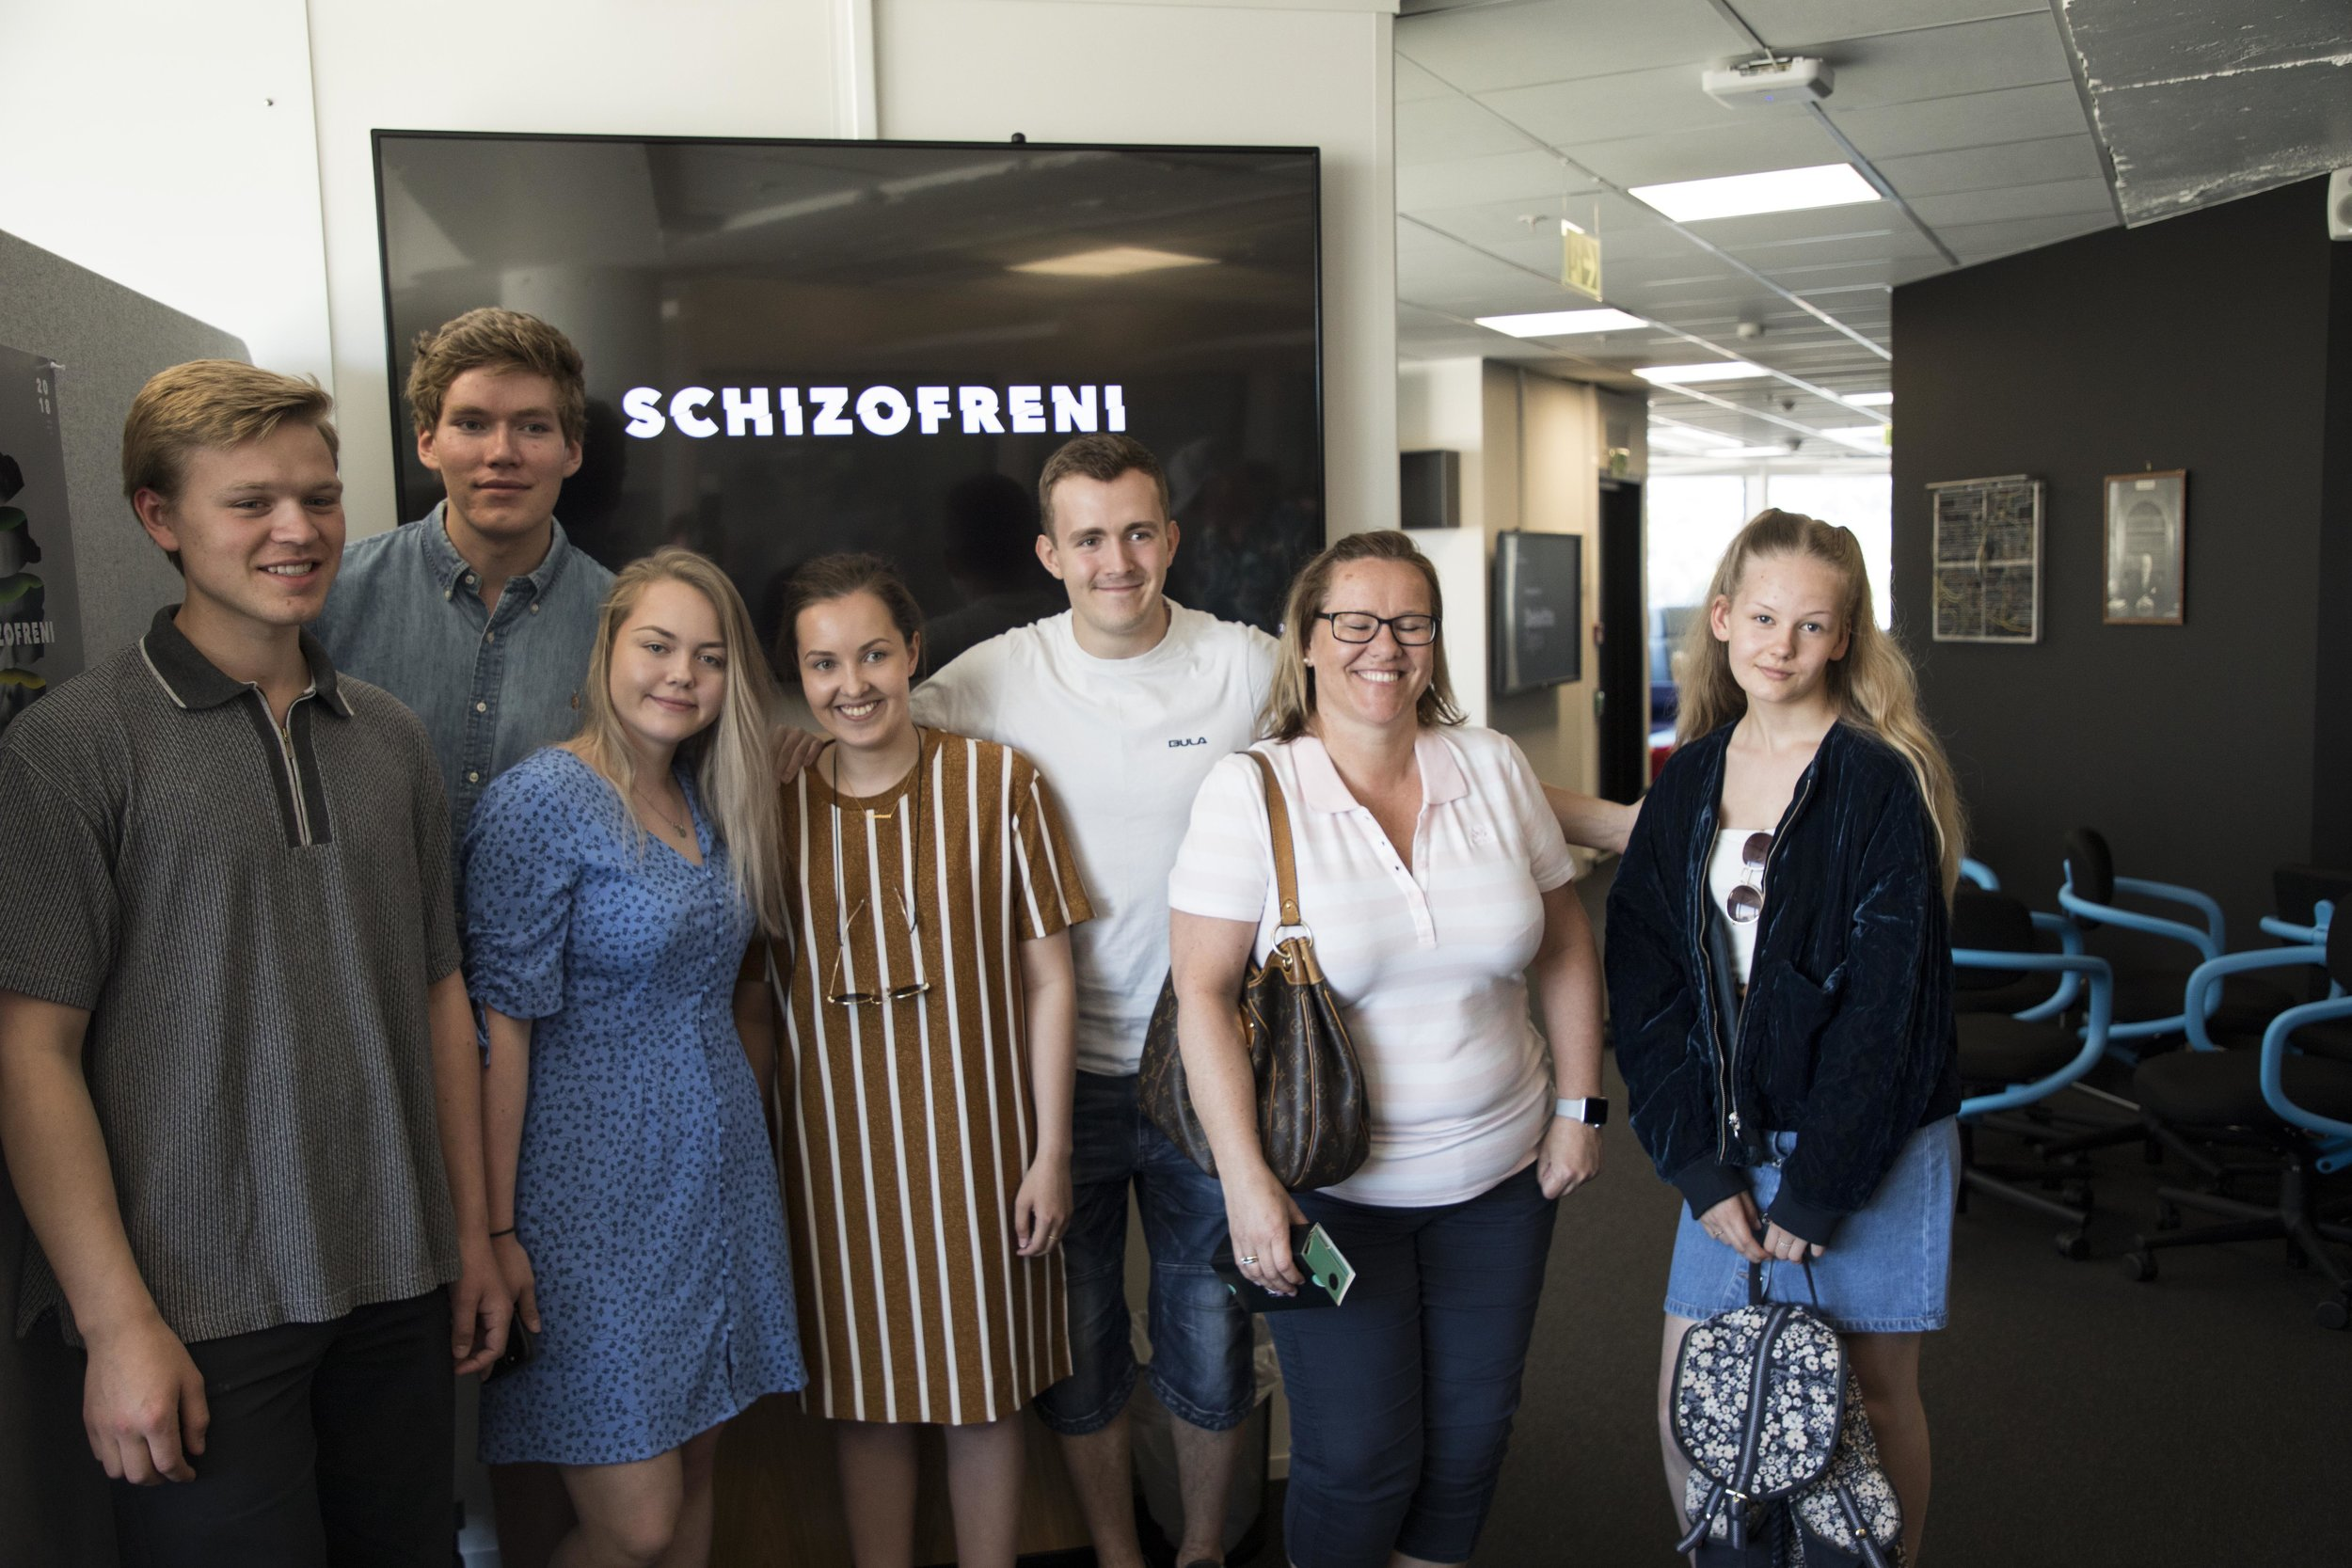 The students behind Schizophrenia are (from the left) Sindre Haveland, Martin Norvoll, Ingvild Vara Hagen, Andrea Iversen Karlsen and Simen Larsen Johansen. The woman and girl to the right were voice actors for the narrative. Photo: Robert Nedrejord